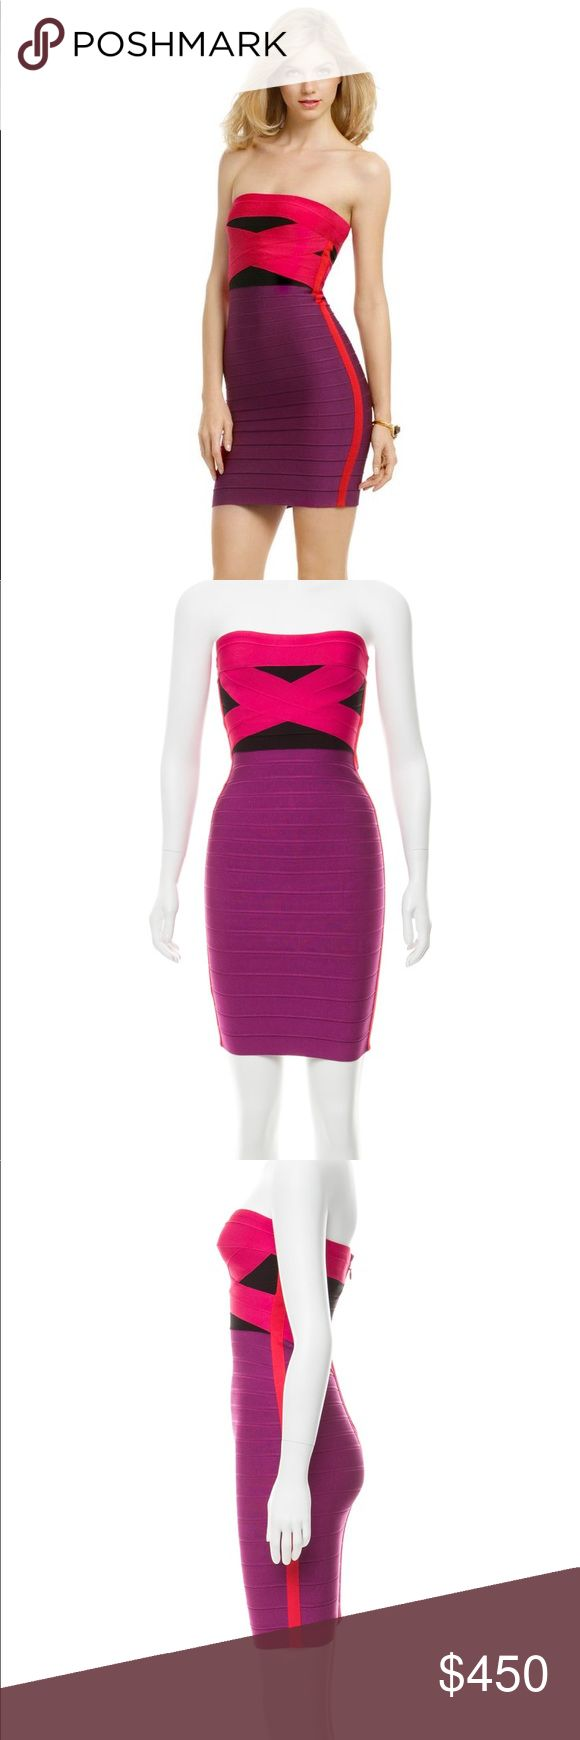 Herve Leger Bandage Purple & Pink Strapless Dress Stunning, sexy and strapless Herve Leger Dress with slimming vertical lines on the side and back. Beautiful waist flattering design on back.   Purple and pink / black color block stretch bandage dress. Perfect for your next night out on the town, special evening or celebration. You'll feel so gorgeous and fabulous! Herve Leger Dresses